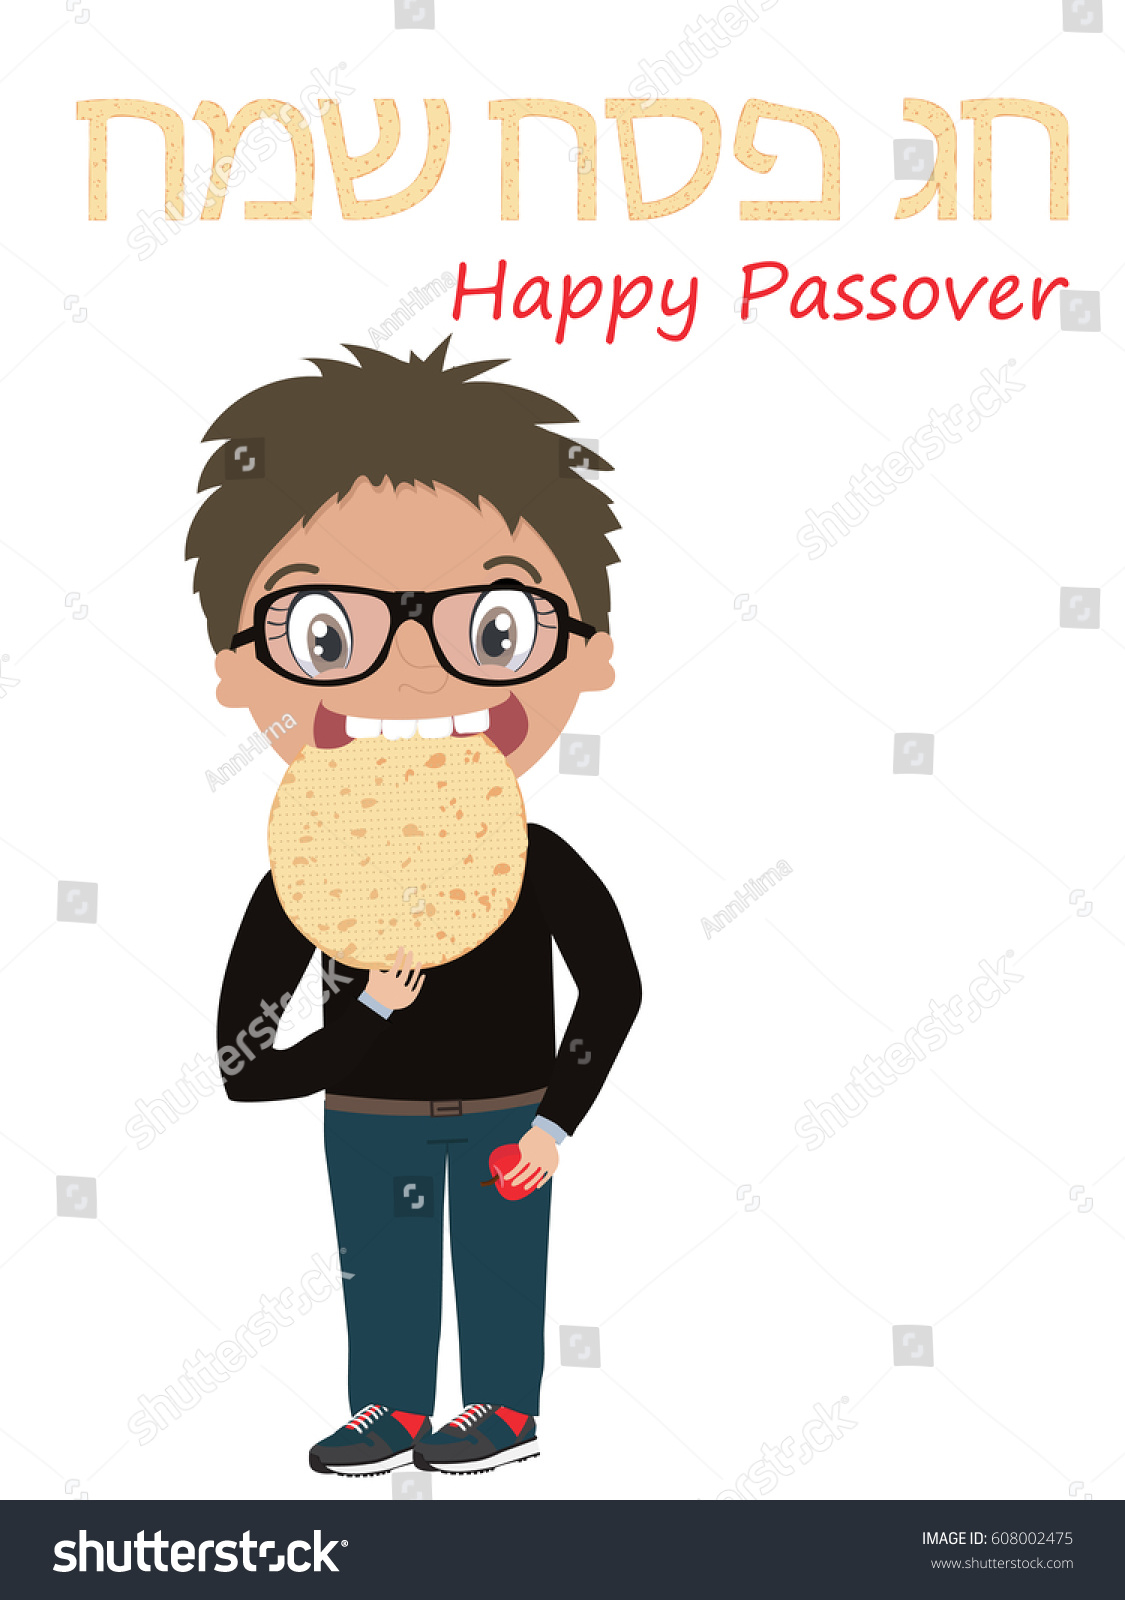 Passover greeting card little boy who stock vector royalty free passover greeting card with a little boy who eats matzo happy and kosher passover in m4hsunfo